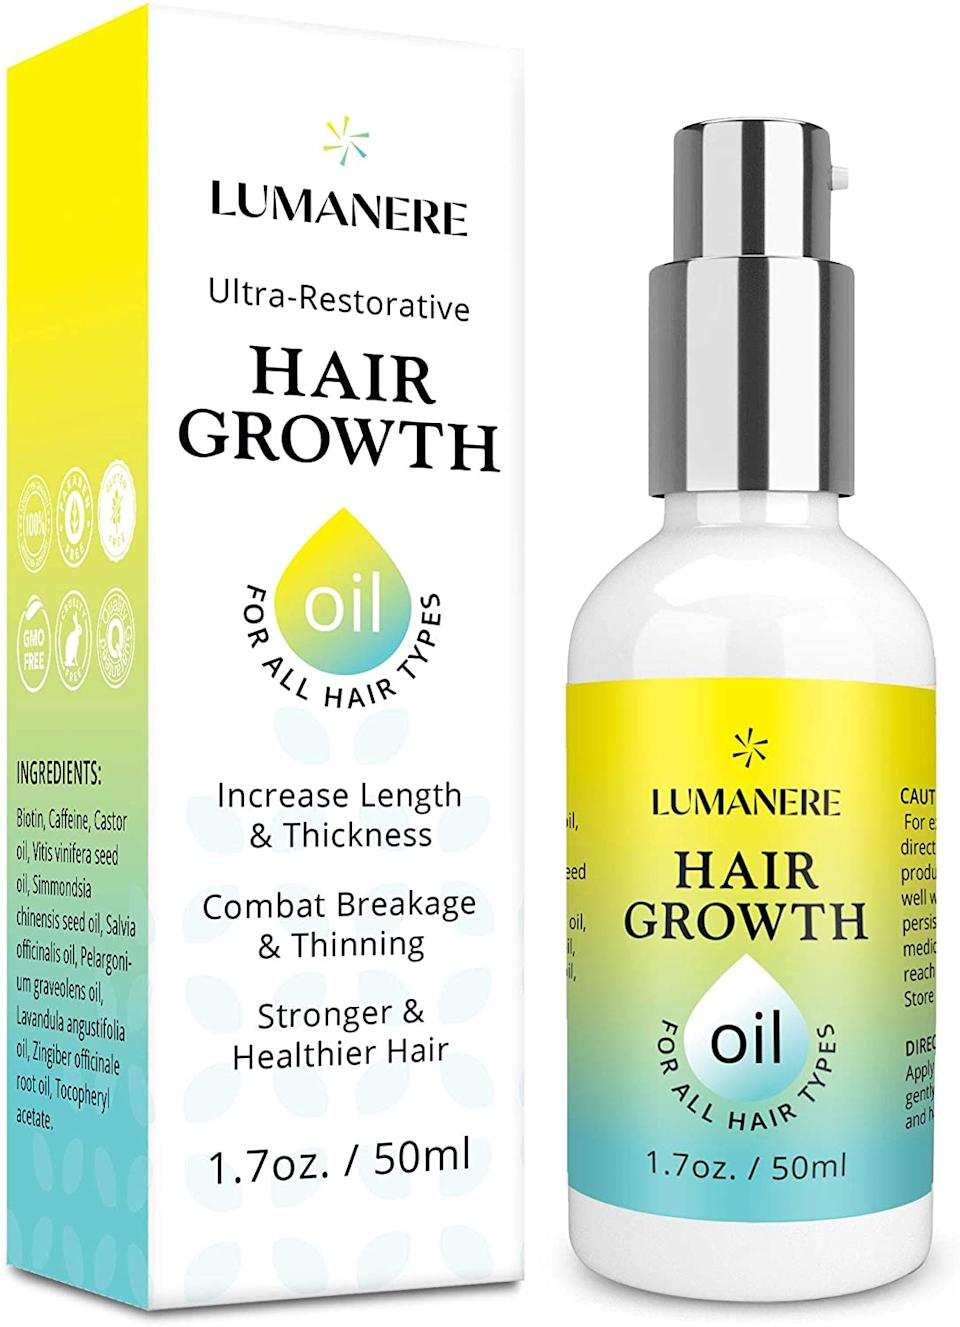 Lumanere Hair Growth Serum - Amazon.